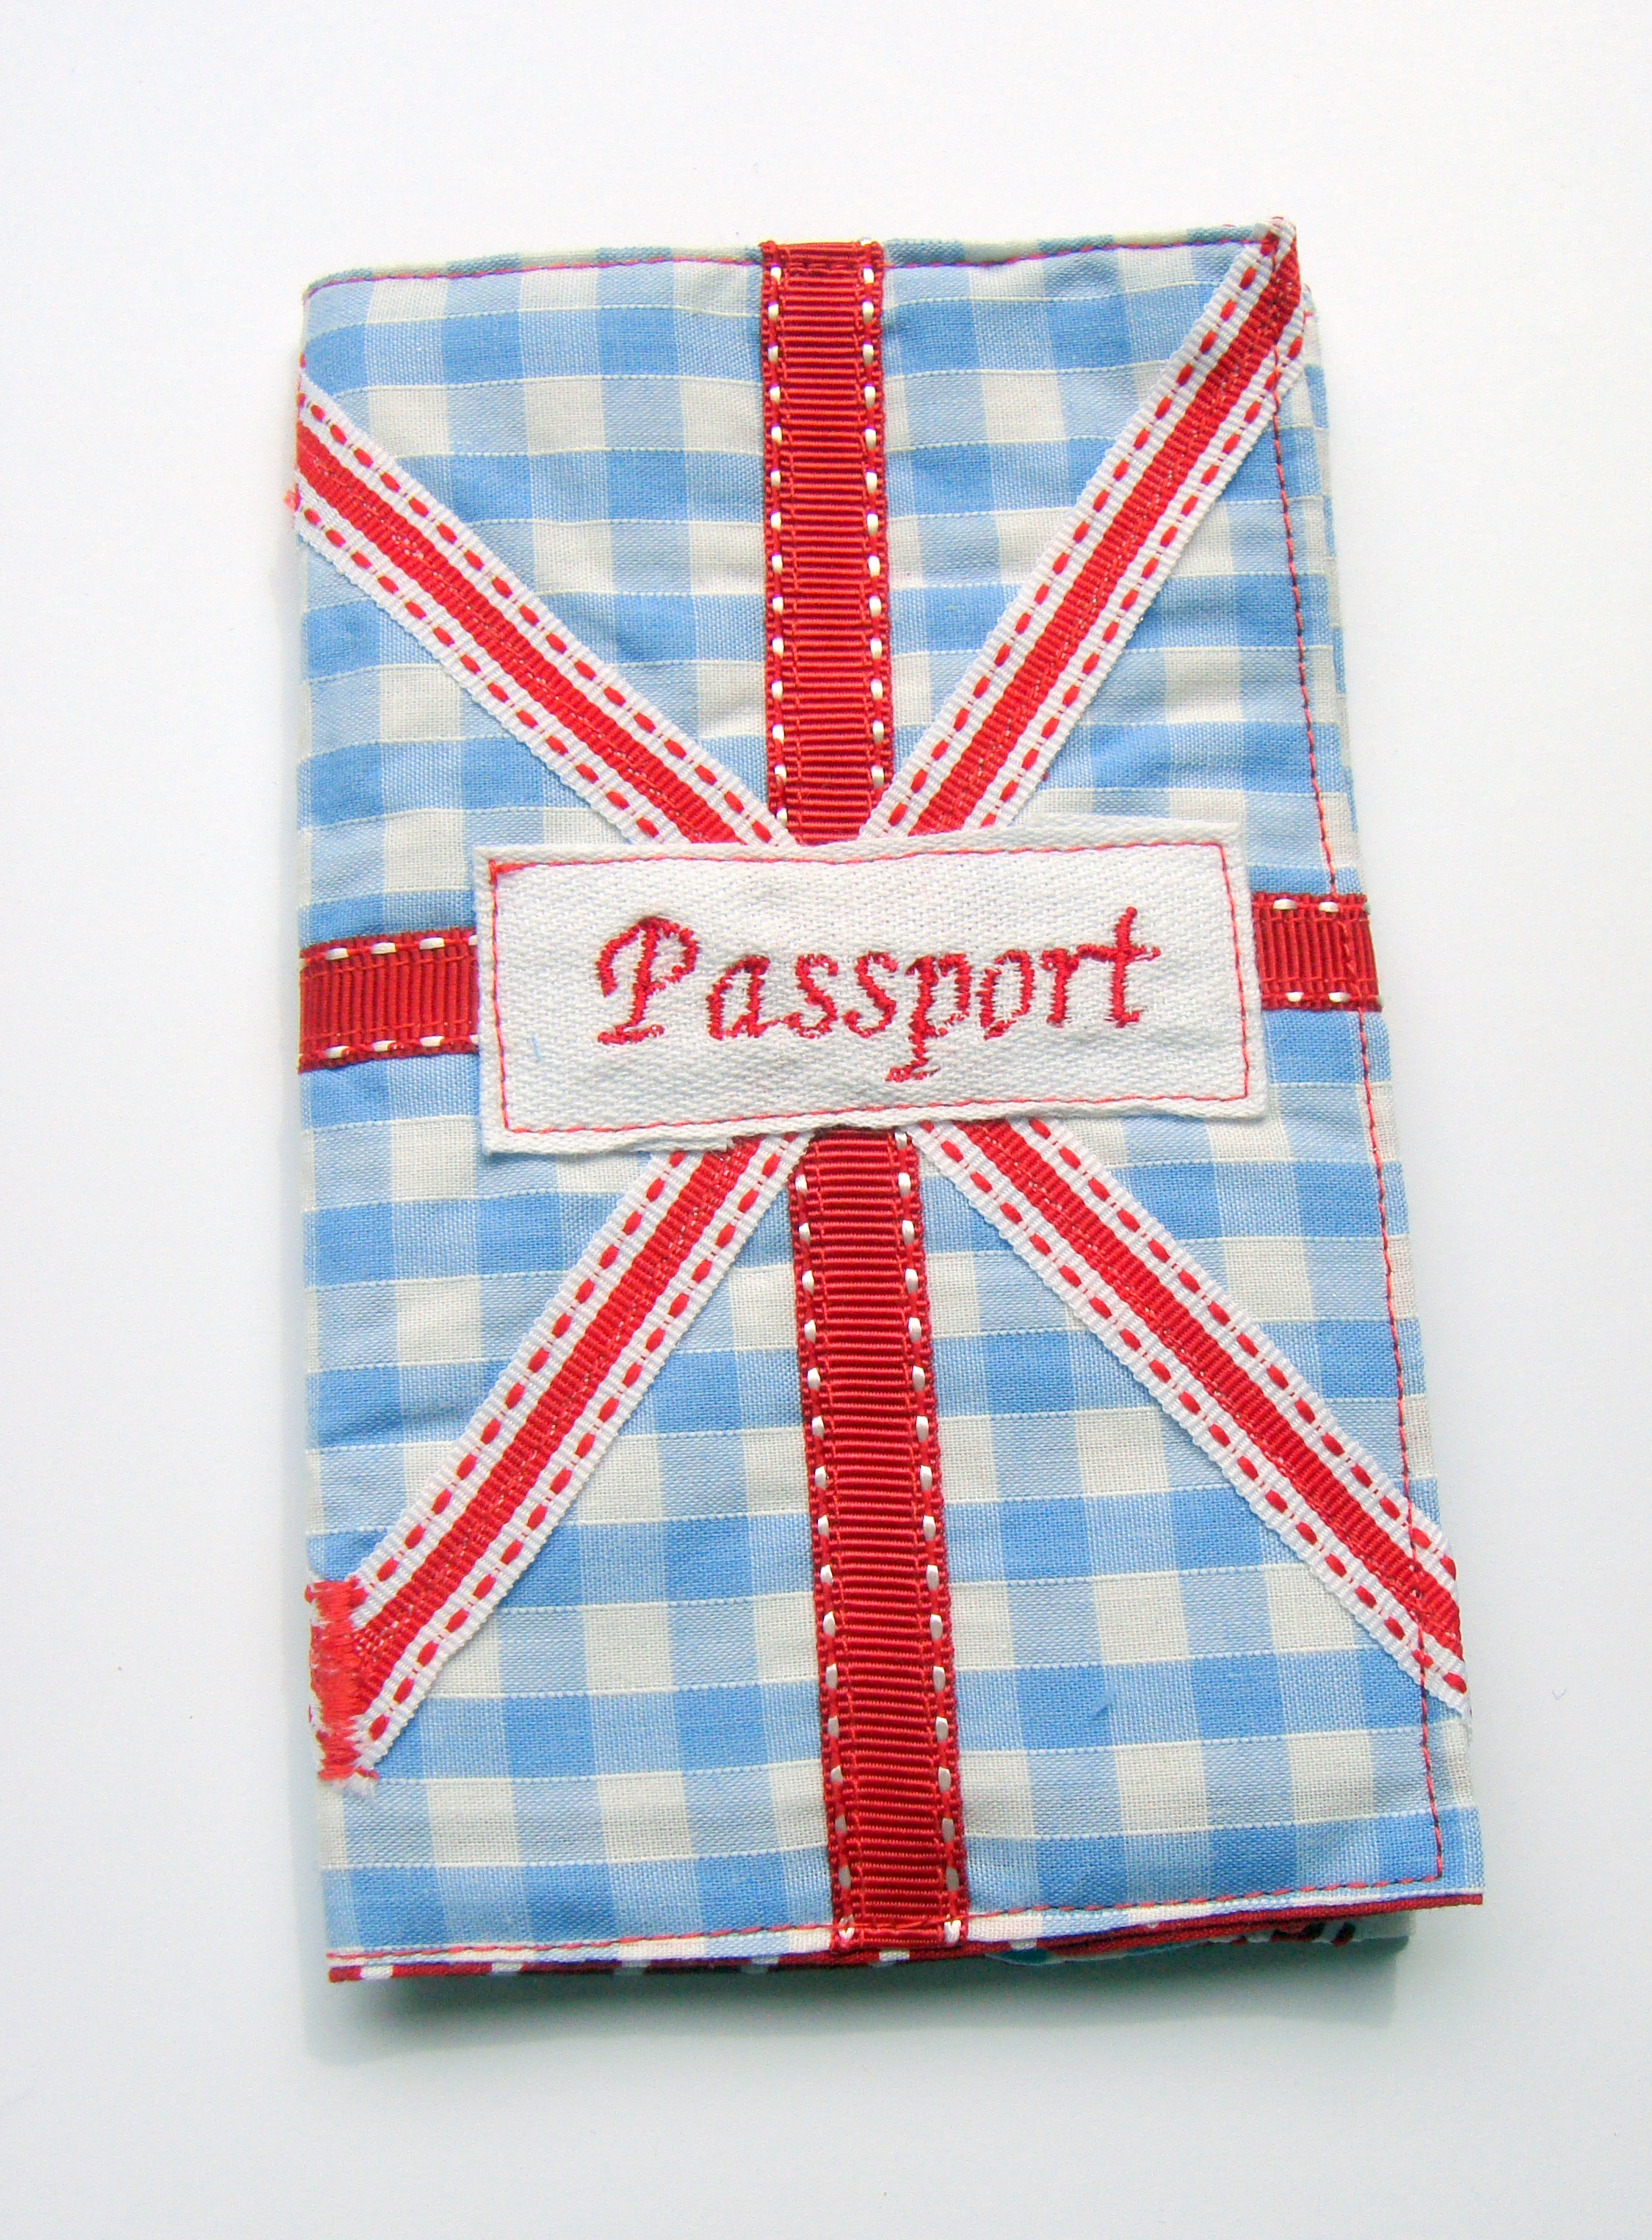 Made with Love - Union Jack Passport Cover